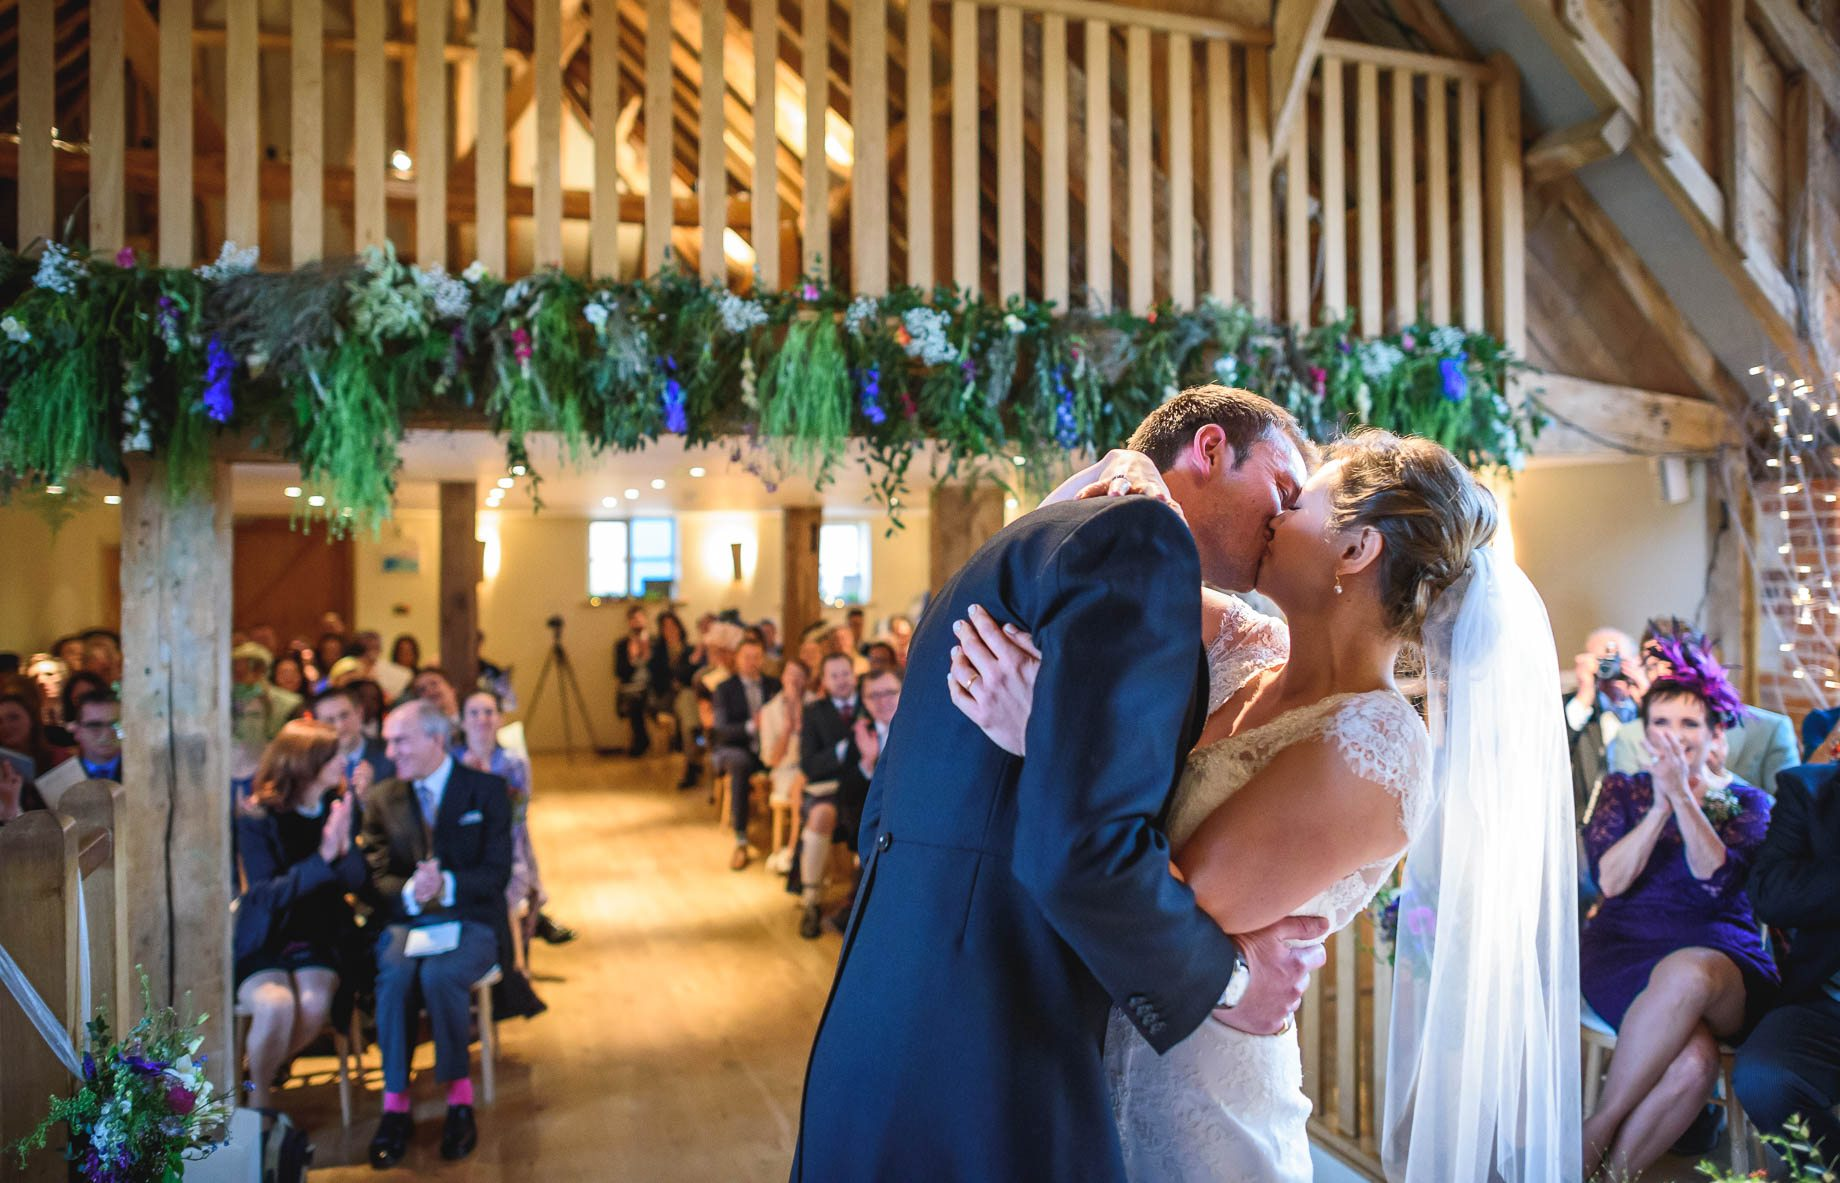 Bury Court Barn wedding photography - Ashley and Henry by Guy Collier Photography (54 of 188)